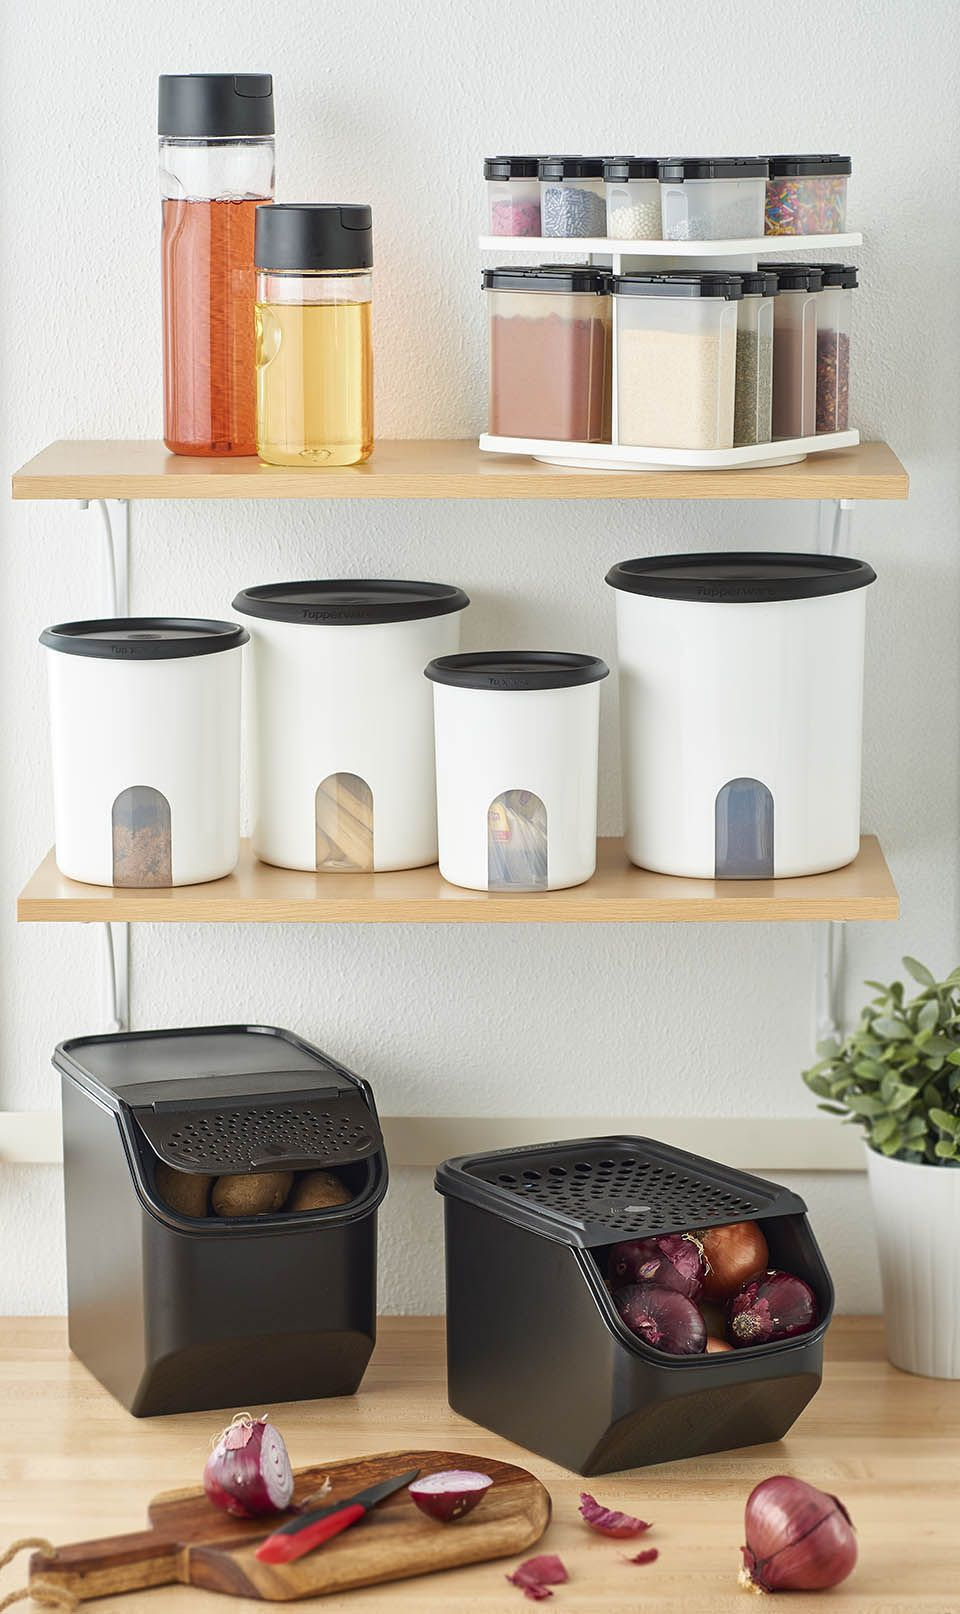 Save Waste Space And Money Do Your Shelf A Favor And Ask Your Consultant About Free In Home Custom Kitch Tupperware Organizing Tupperware Storage Tupperware